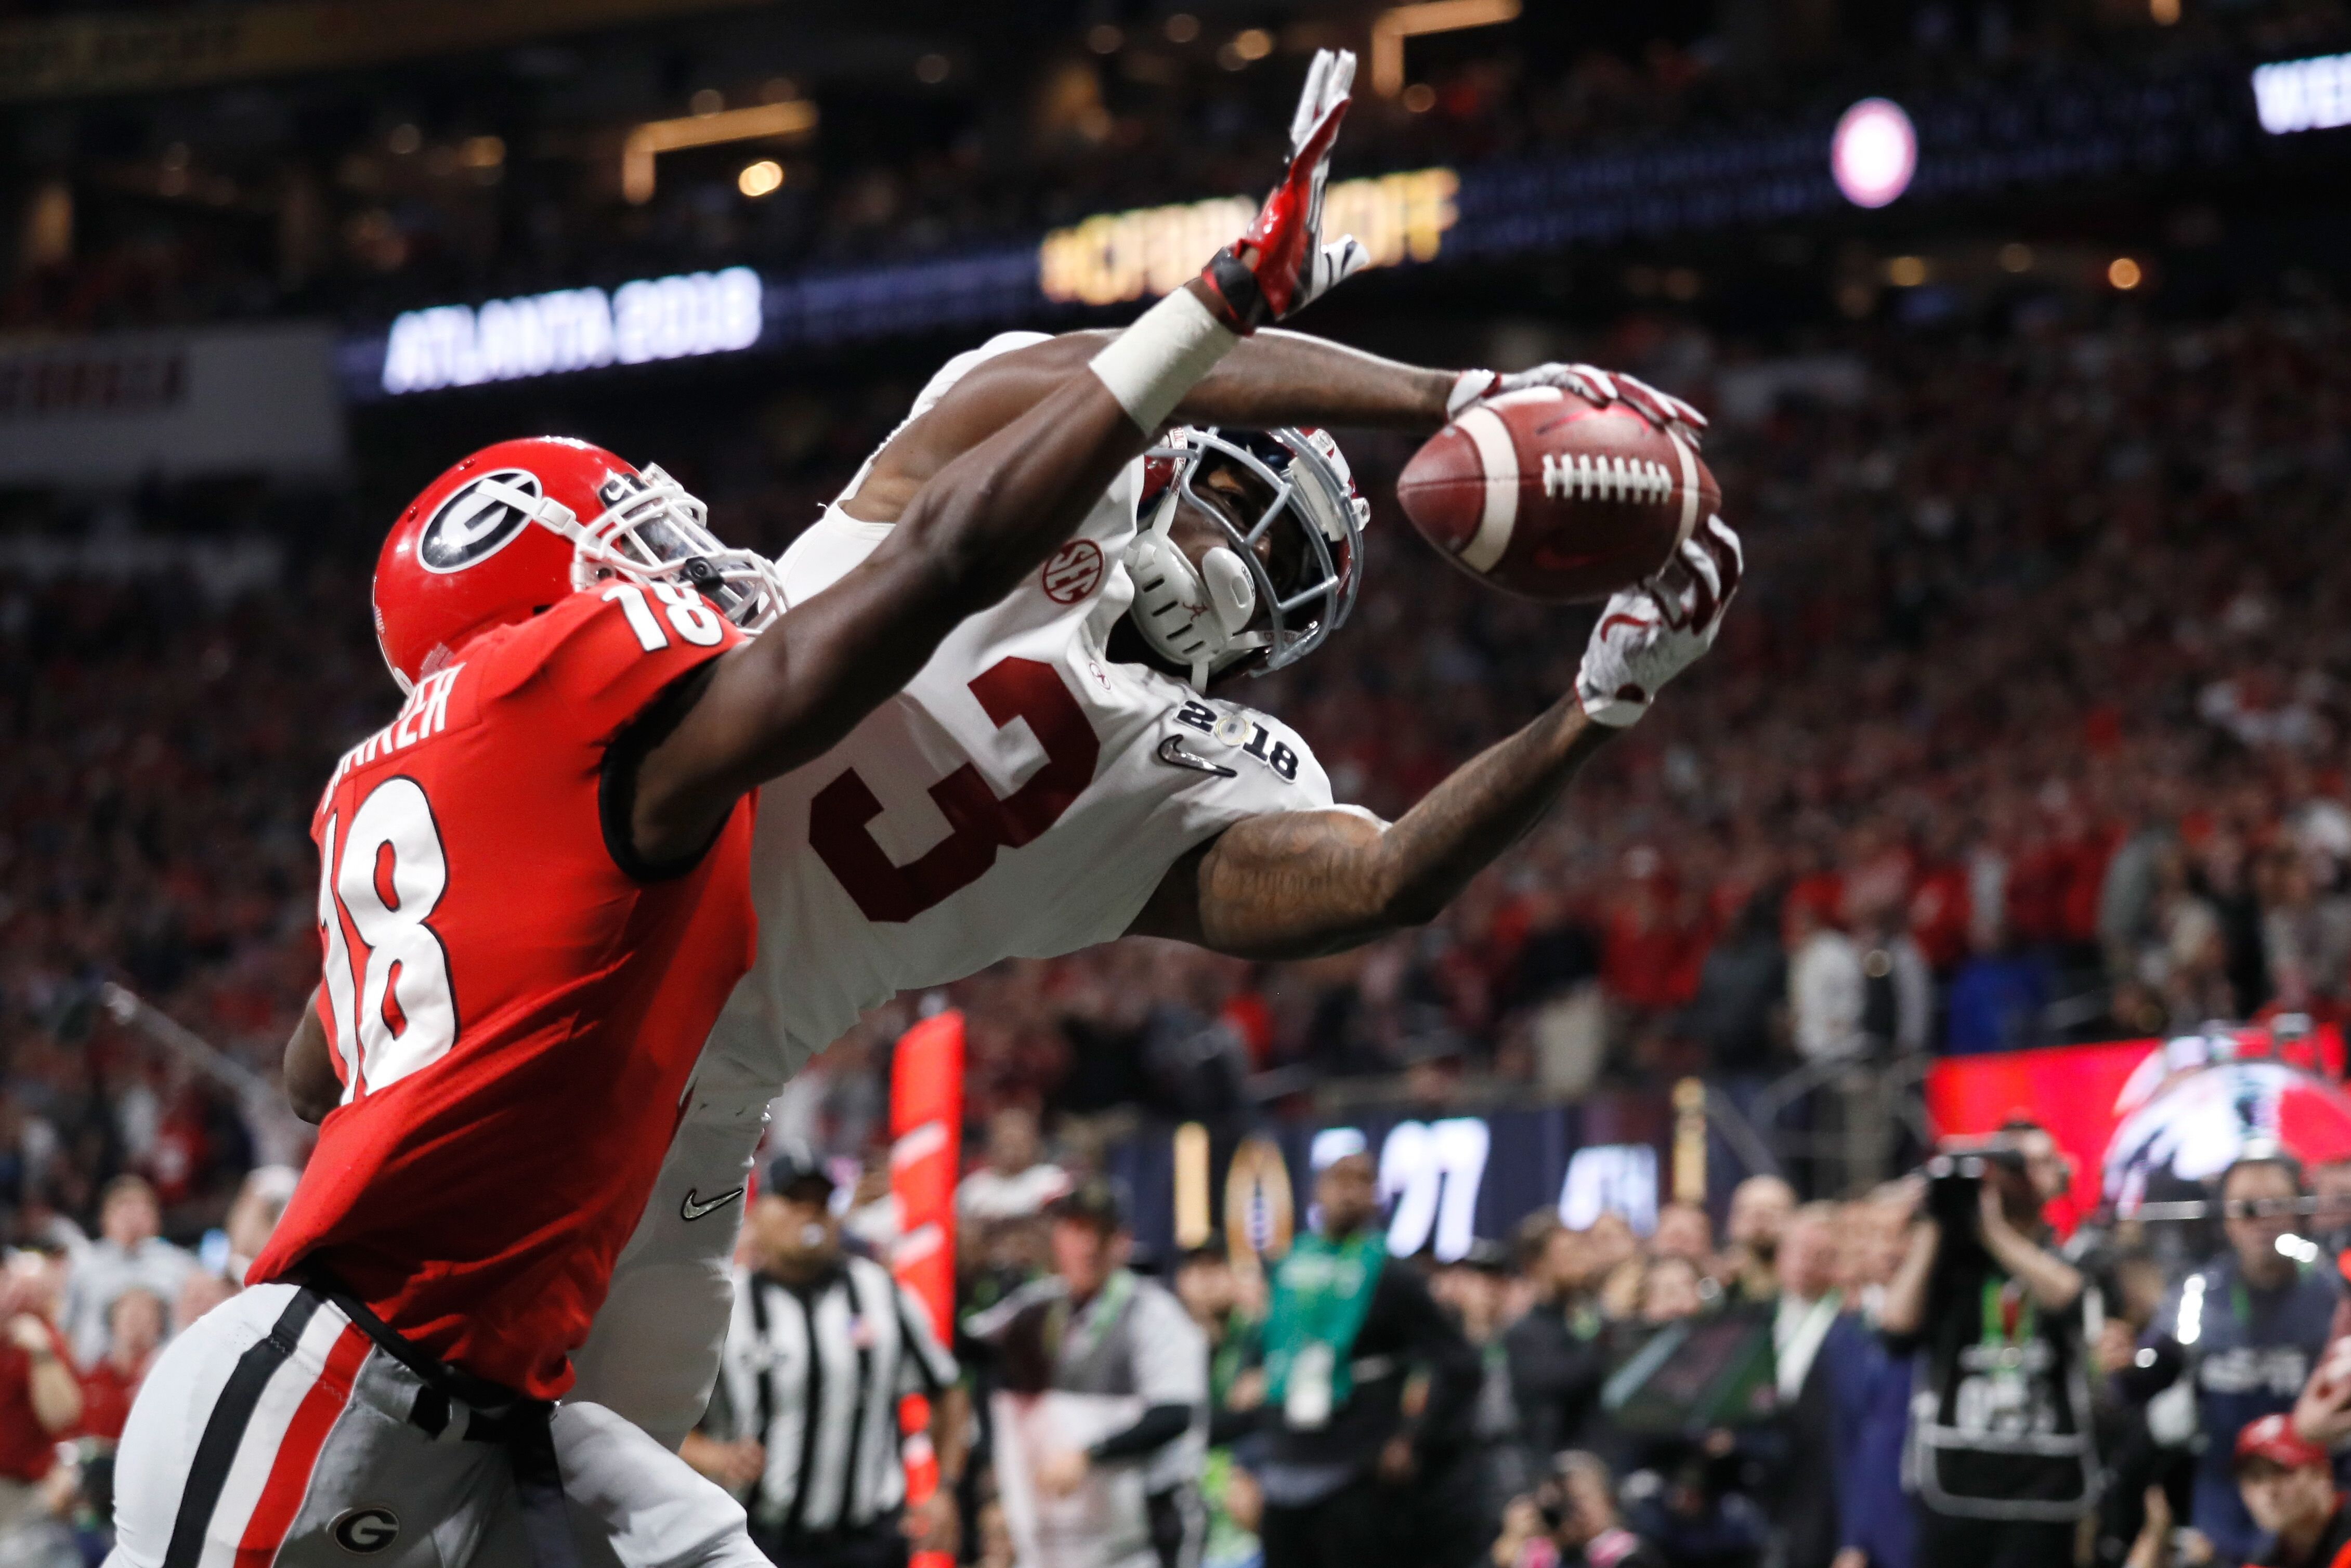 902781366-cfp-national-championship-presented-by-at.jpg